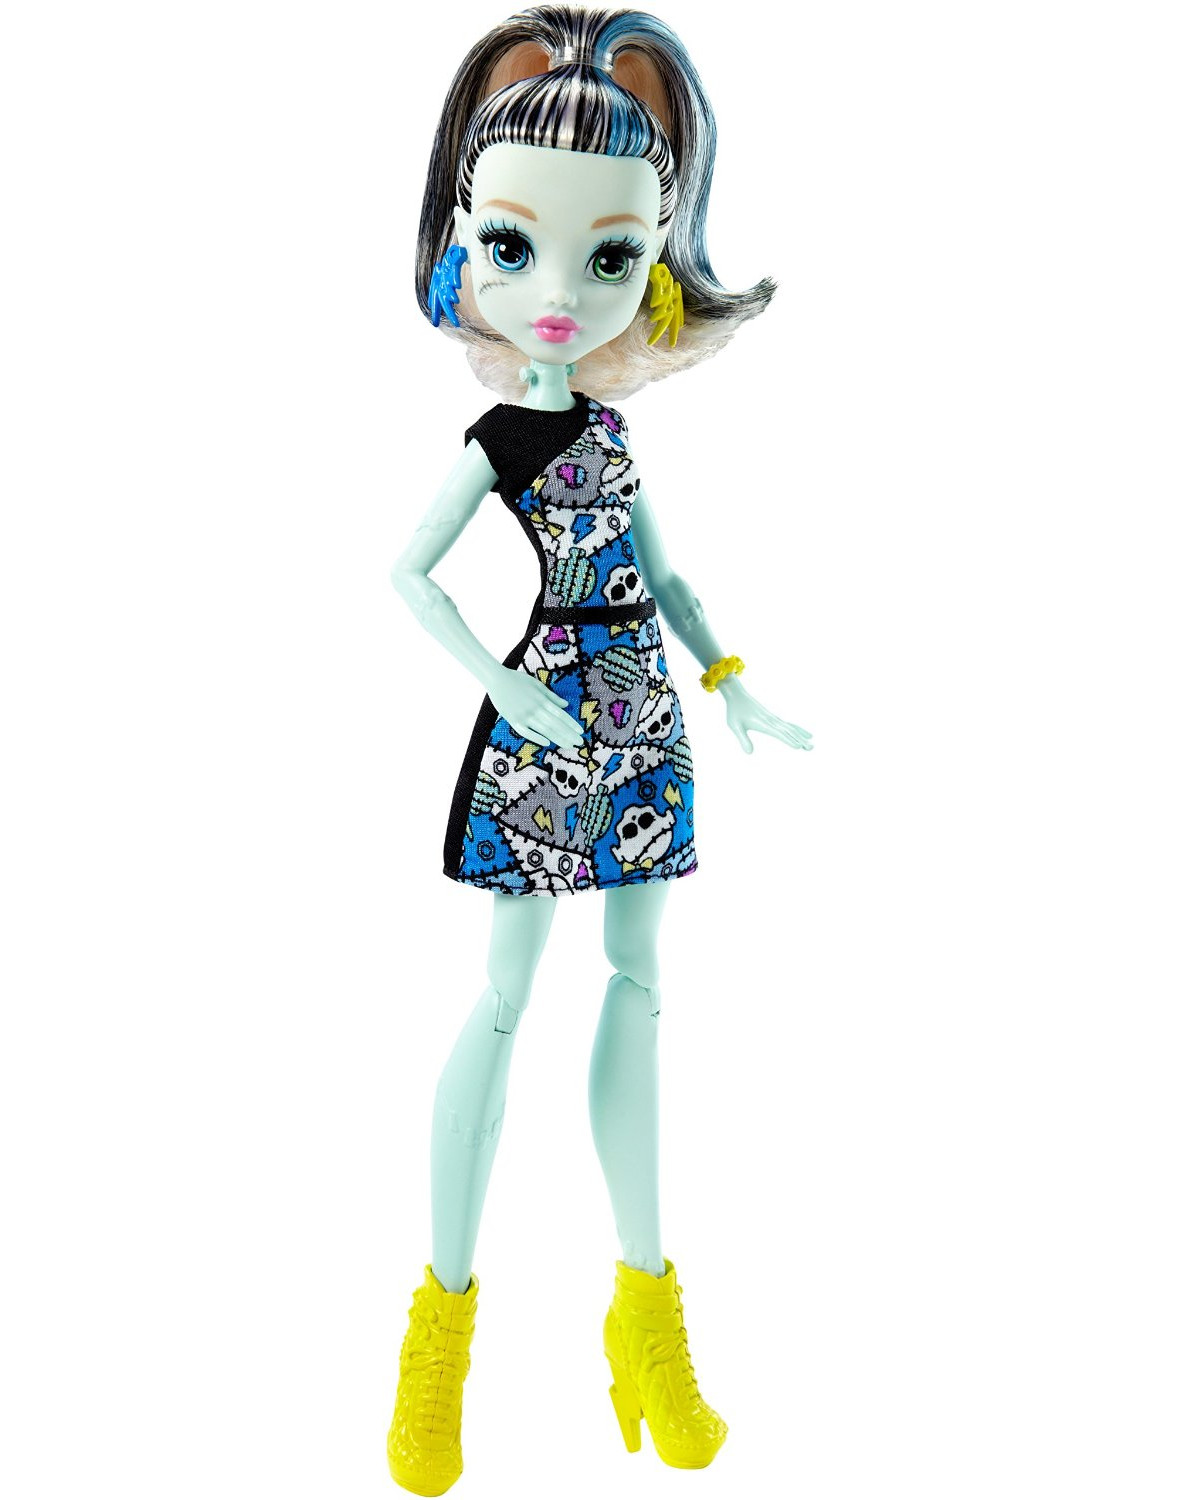 Кукла Monster High - Фрэнки Штейн, 27 смКуклы Ever After High и Monster High<br>Кукла Monster High - Фрэнки Штейн, 27 см<br>